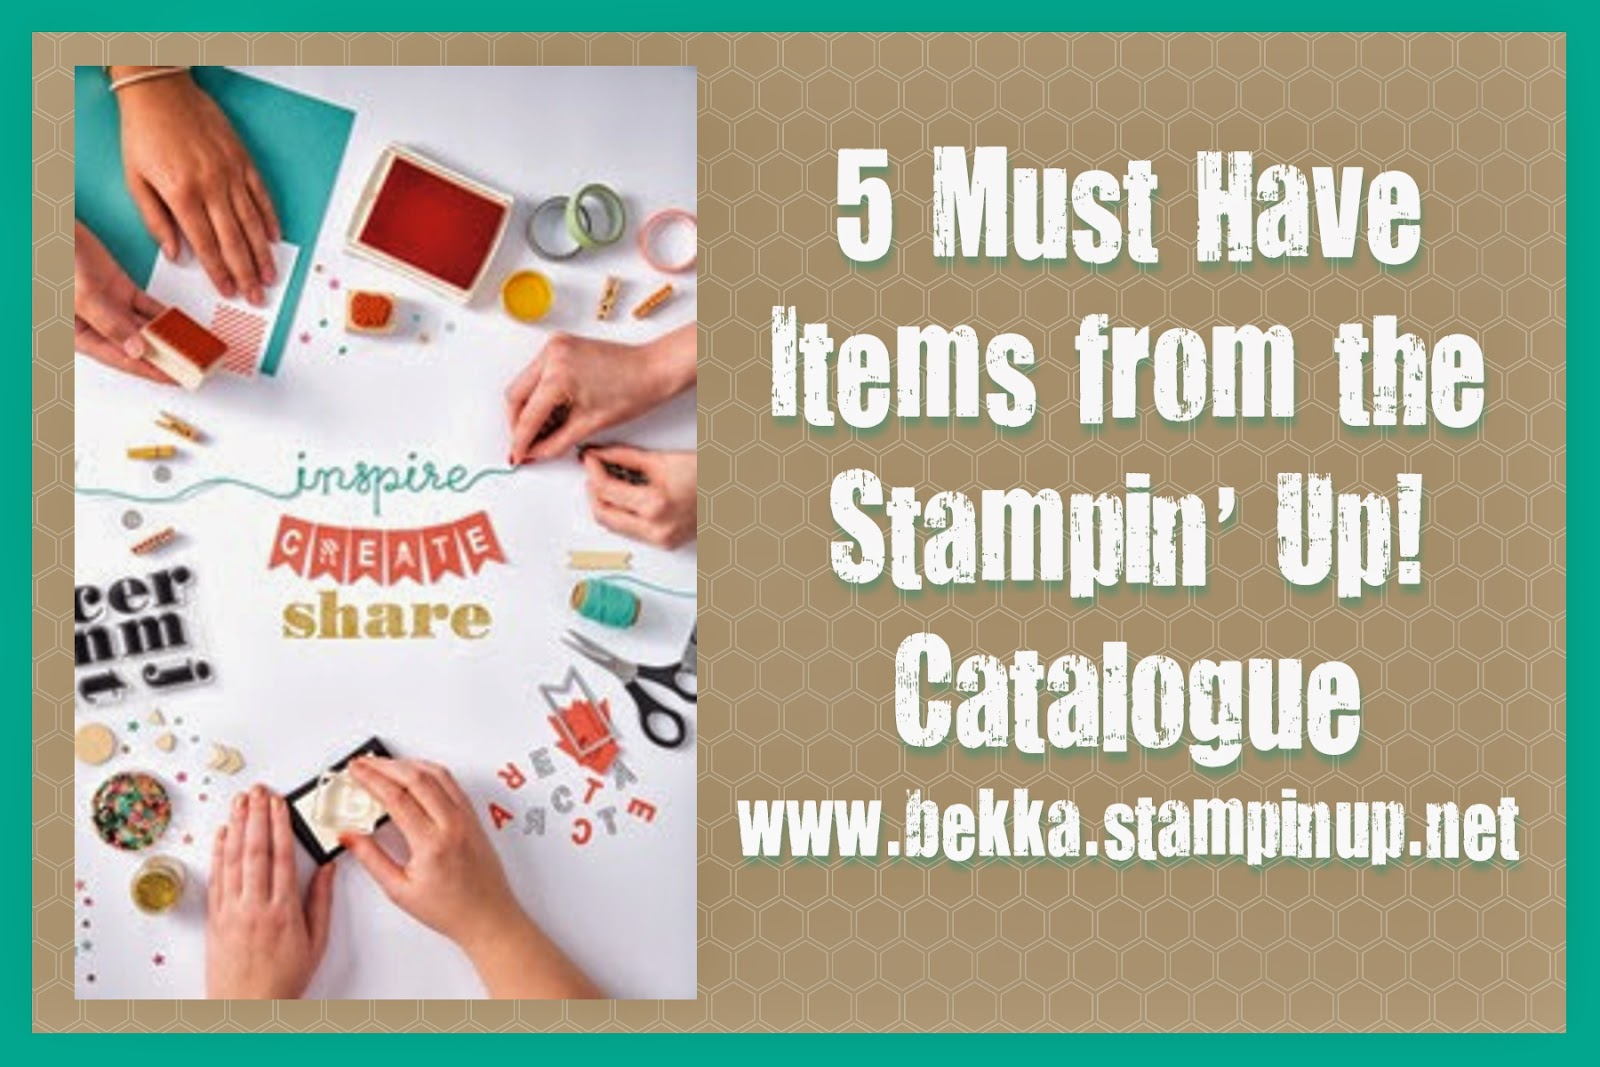 5 Must Have Items from the New Stampin' Up! Catalogue